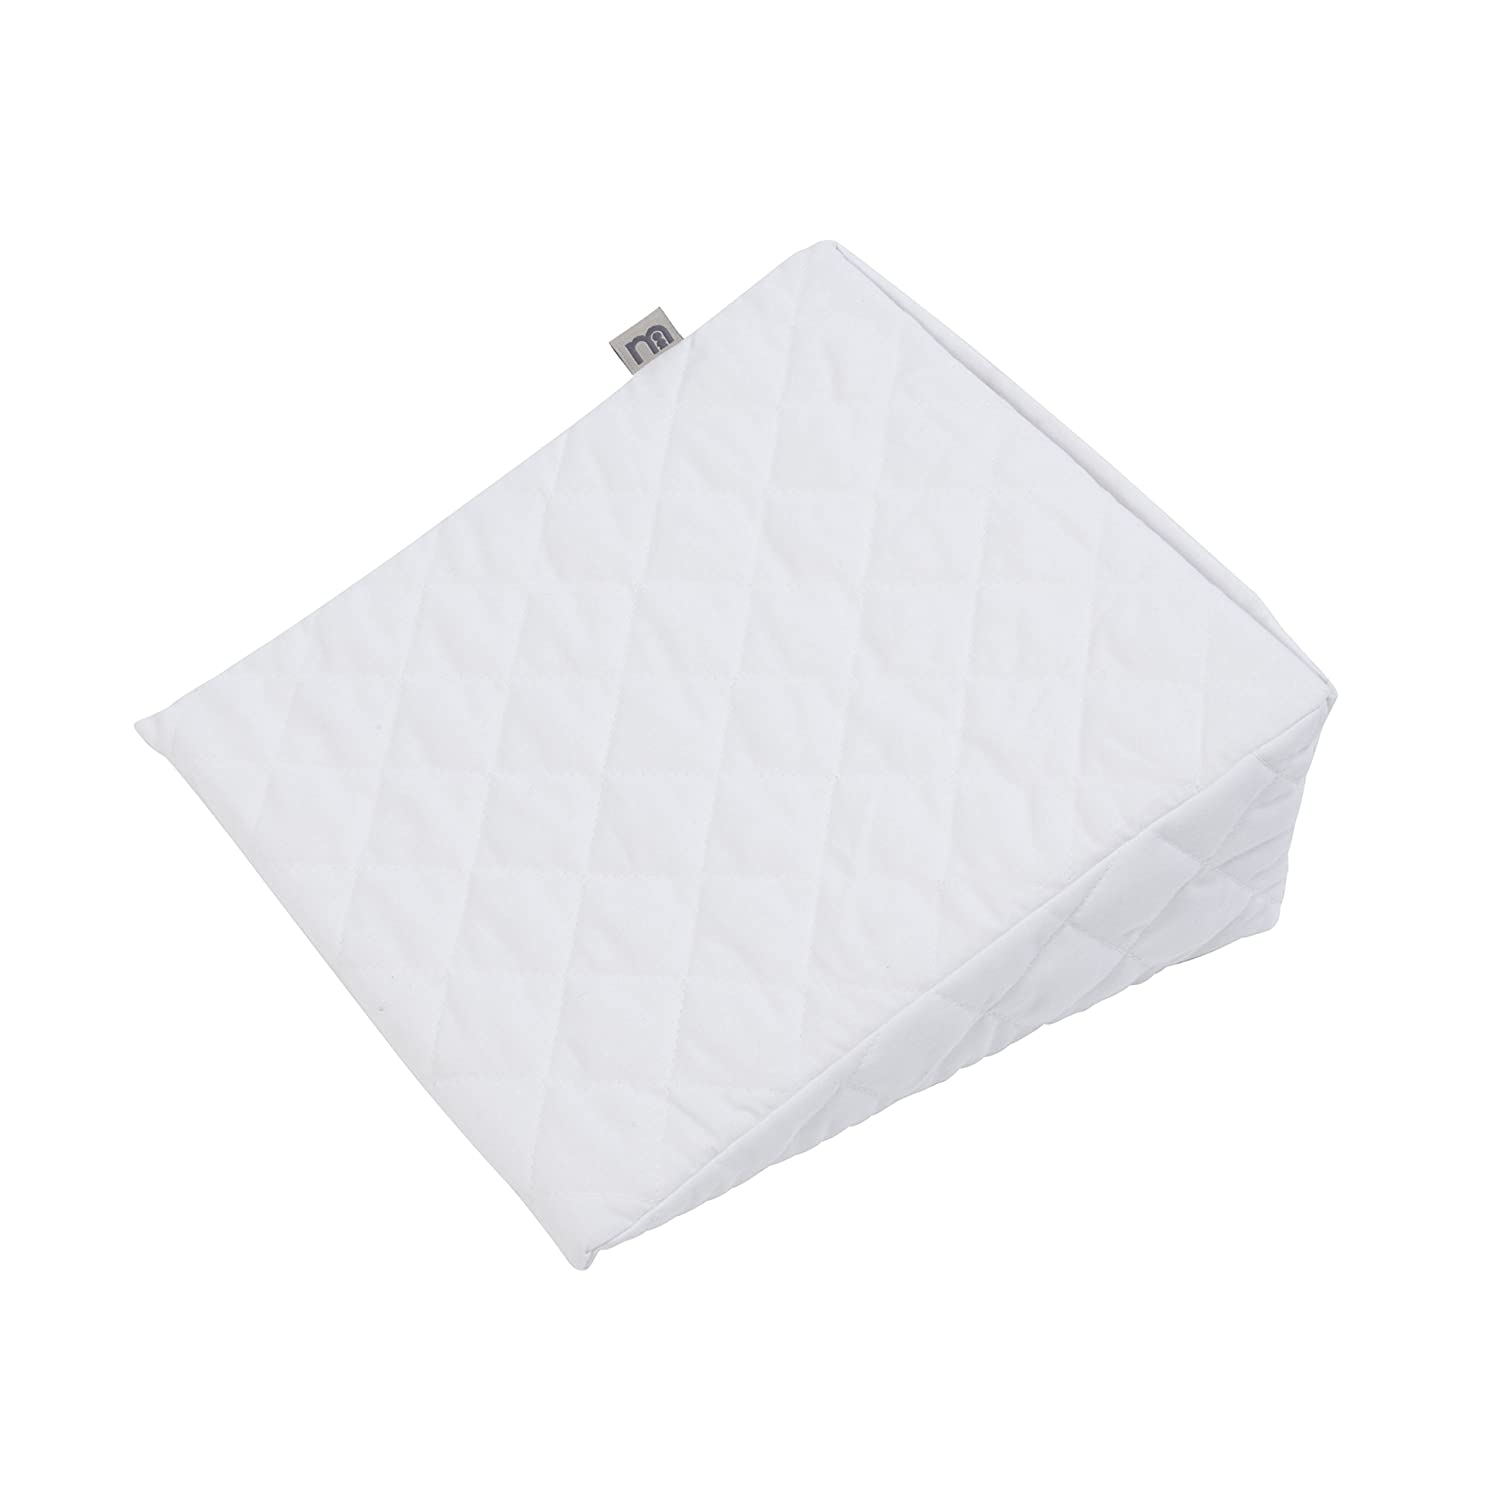 Mothercare Wedge Pillow 845900